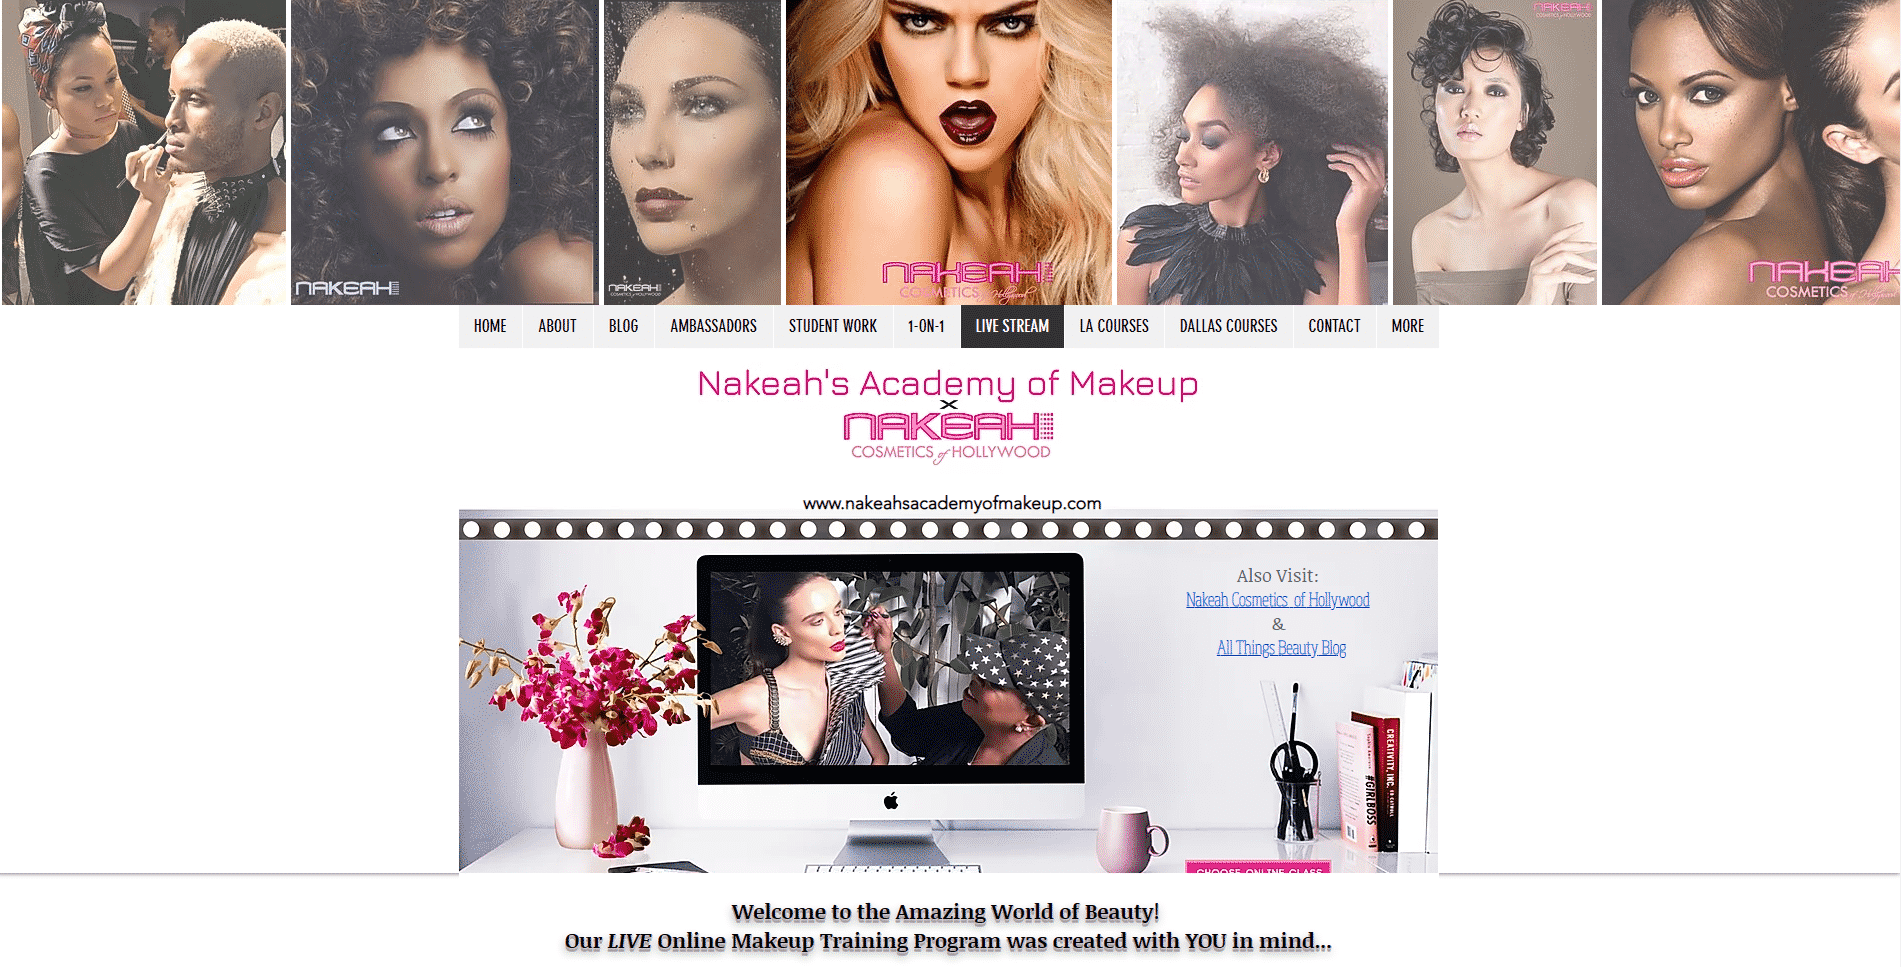 Nakeah Academy of Makeup Learn Makeup and Beauty Lessons Online